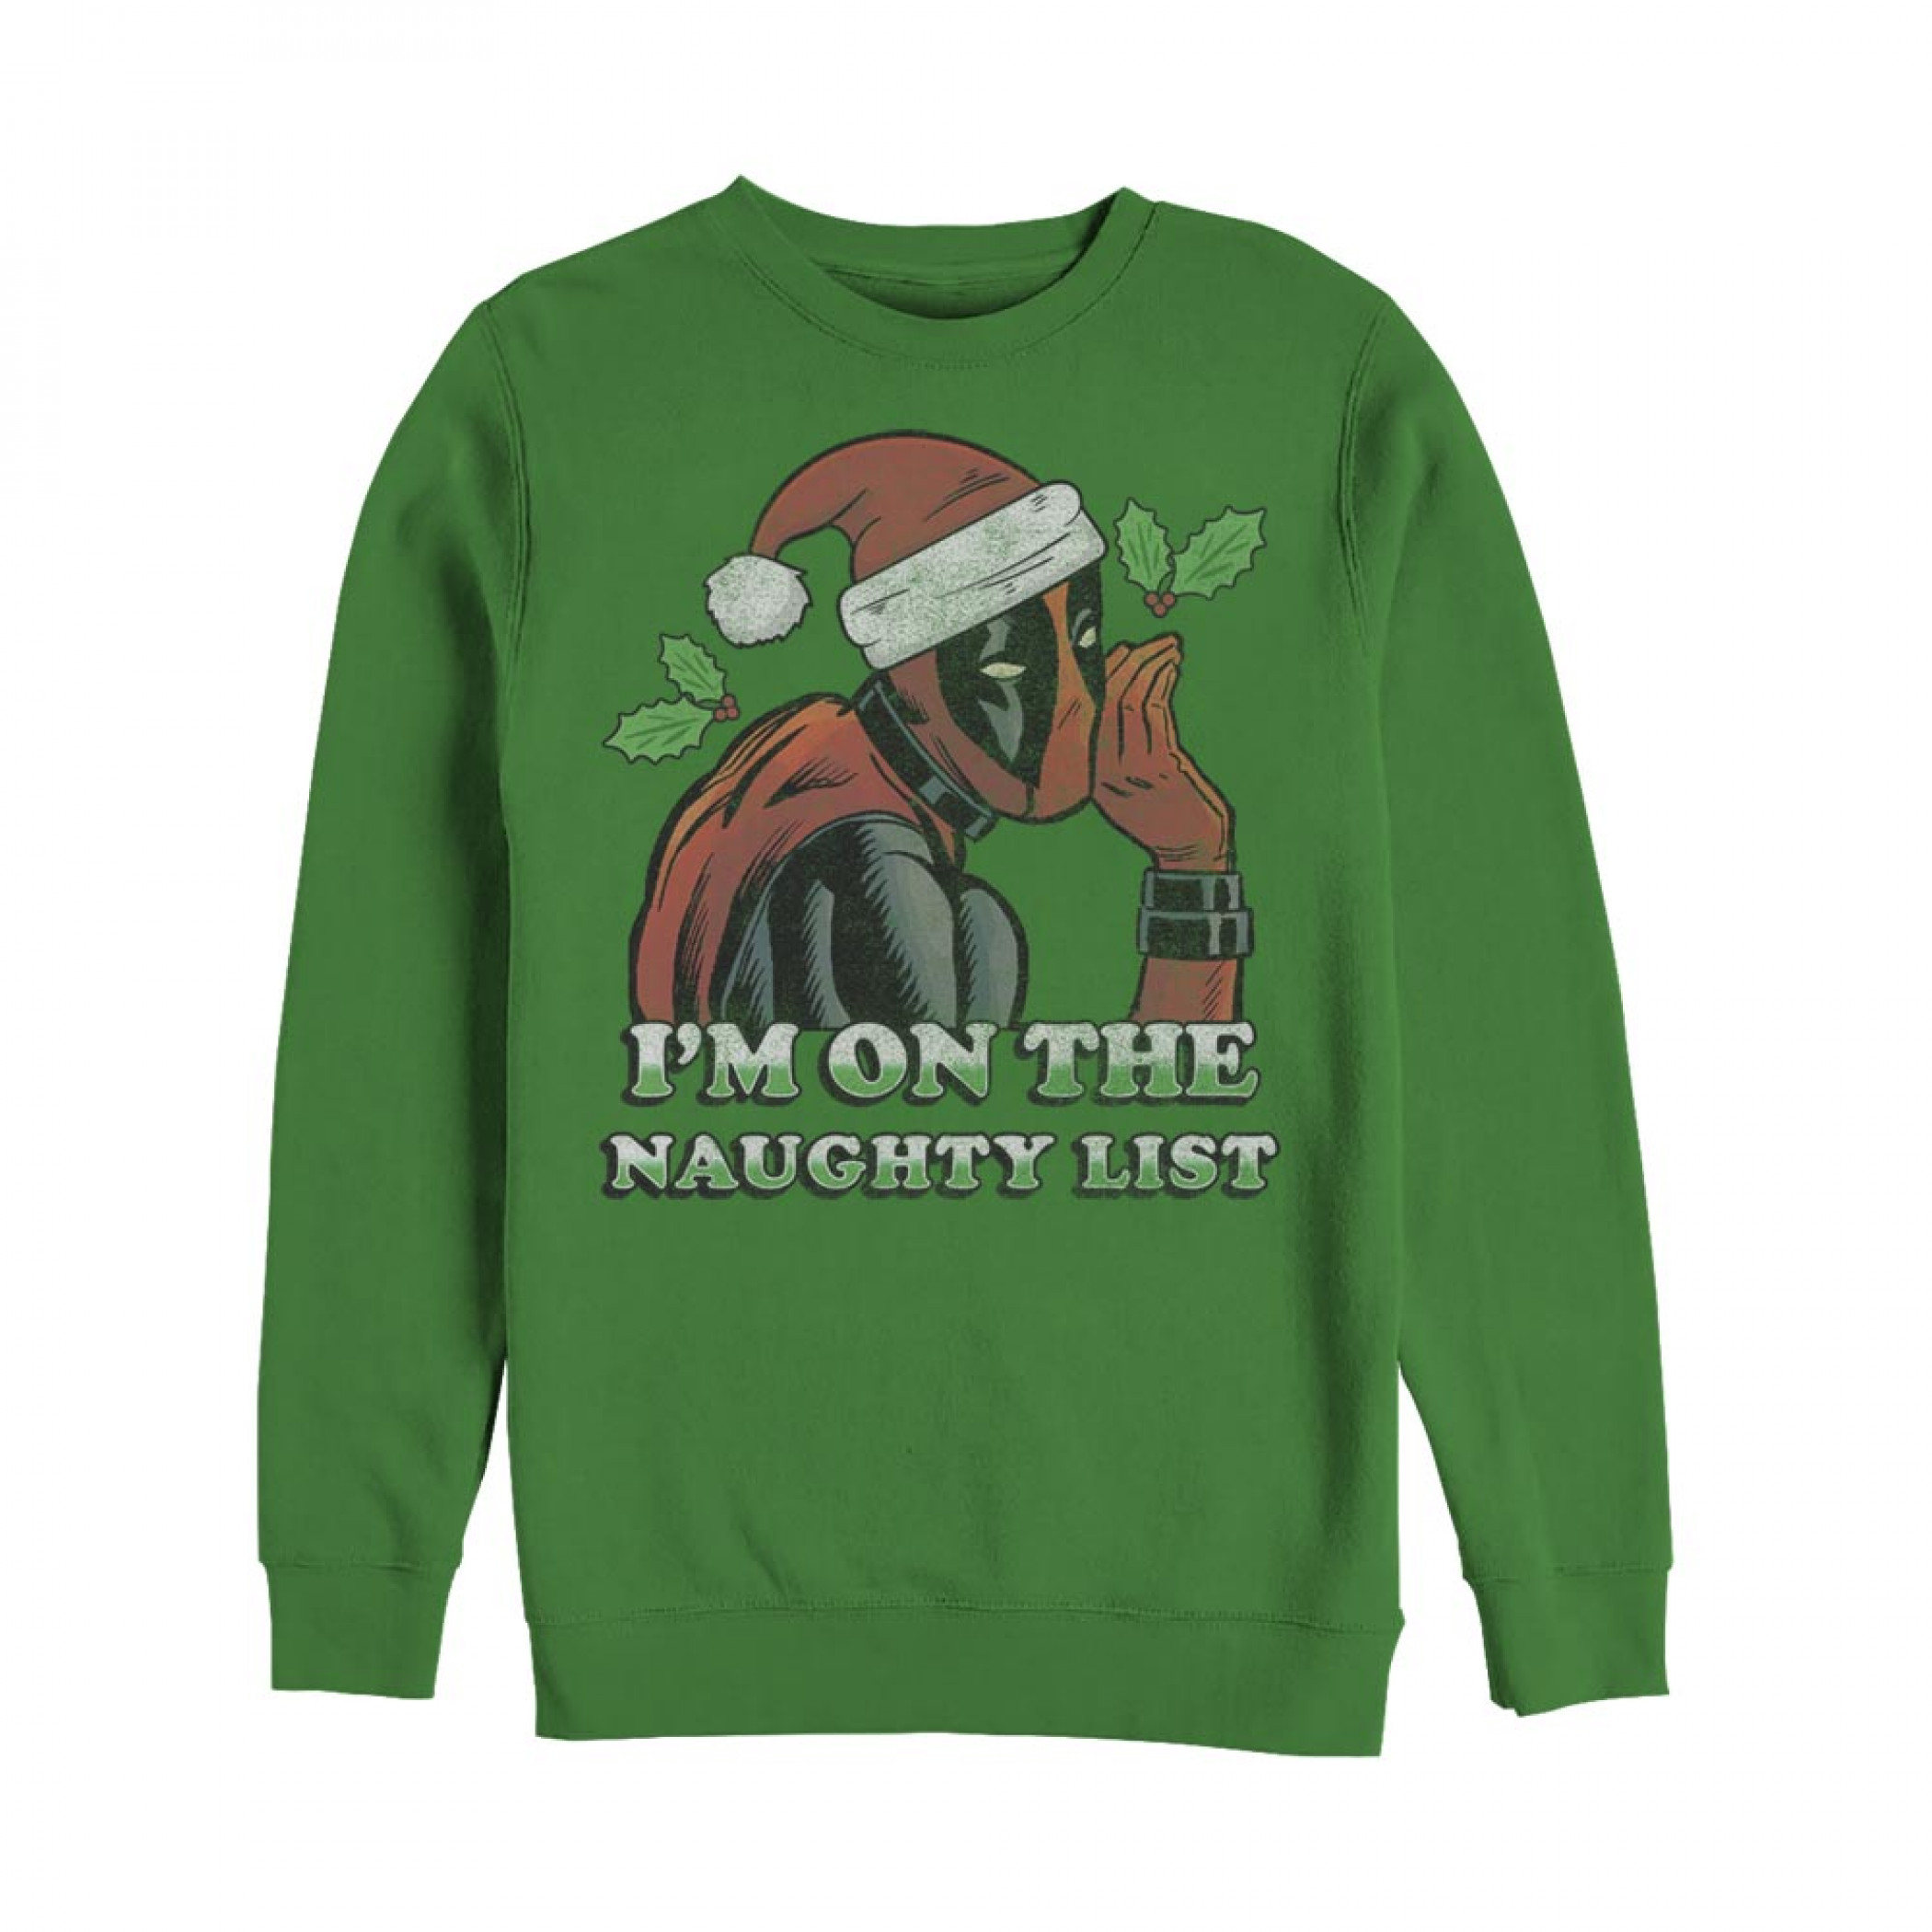 Deadpool On The Naughty List Ugly Christmas Sweatshirt